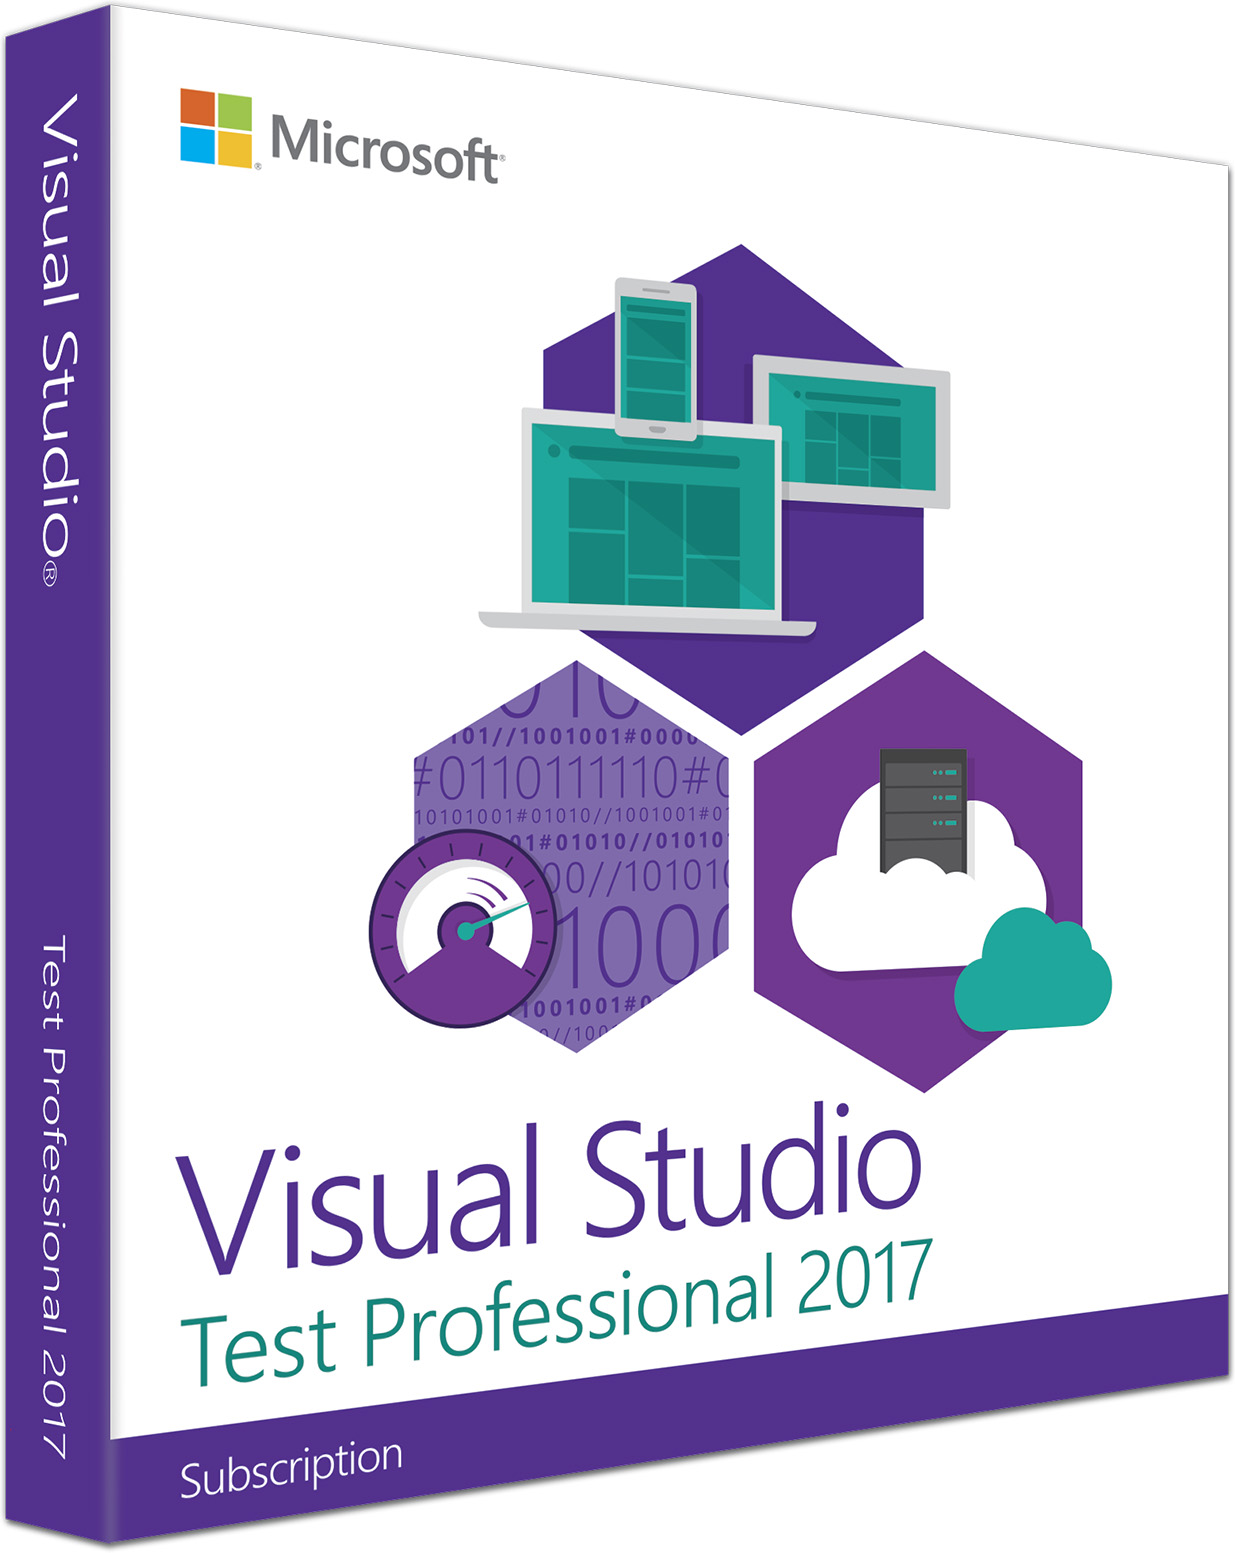 visual-studio-test-professional-subscription-new